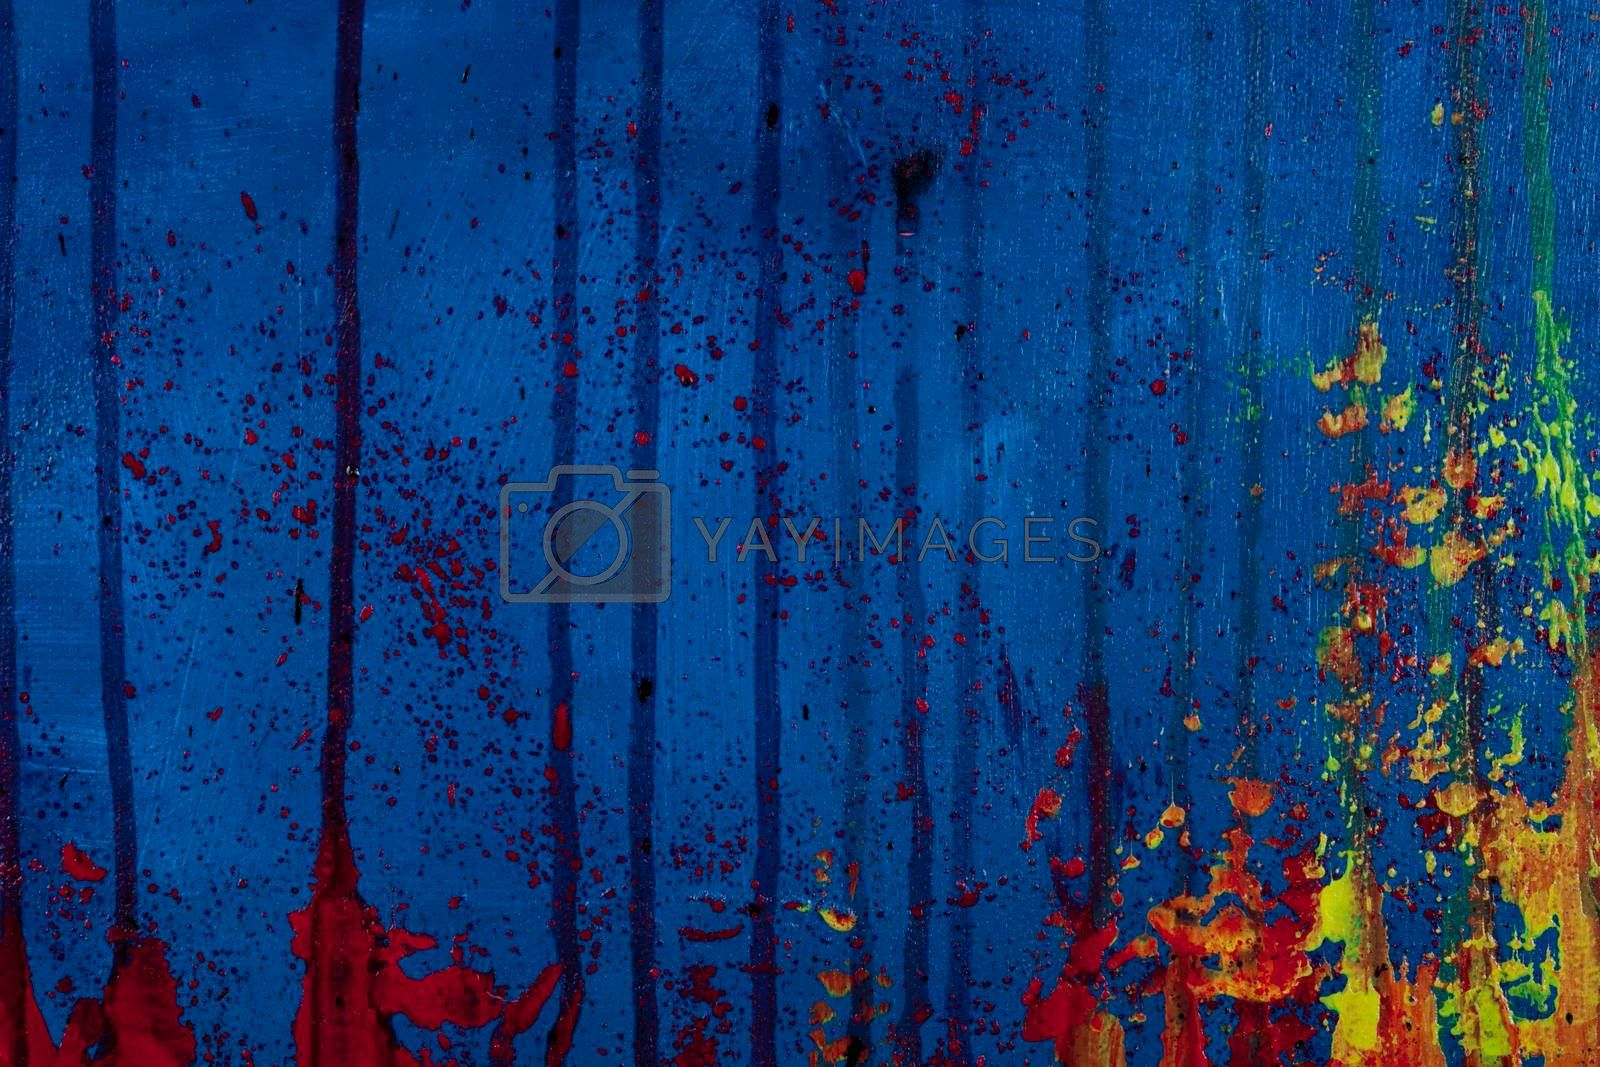 Blue, red and yellow colored wall texture background. Decorative wall paint.